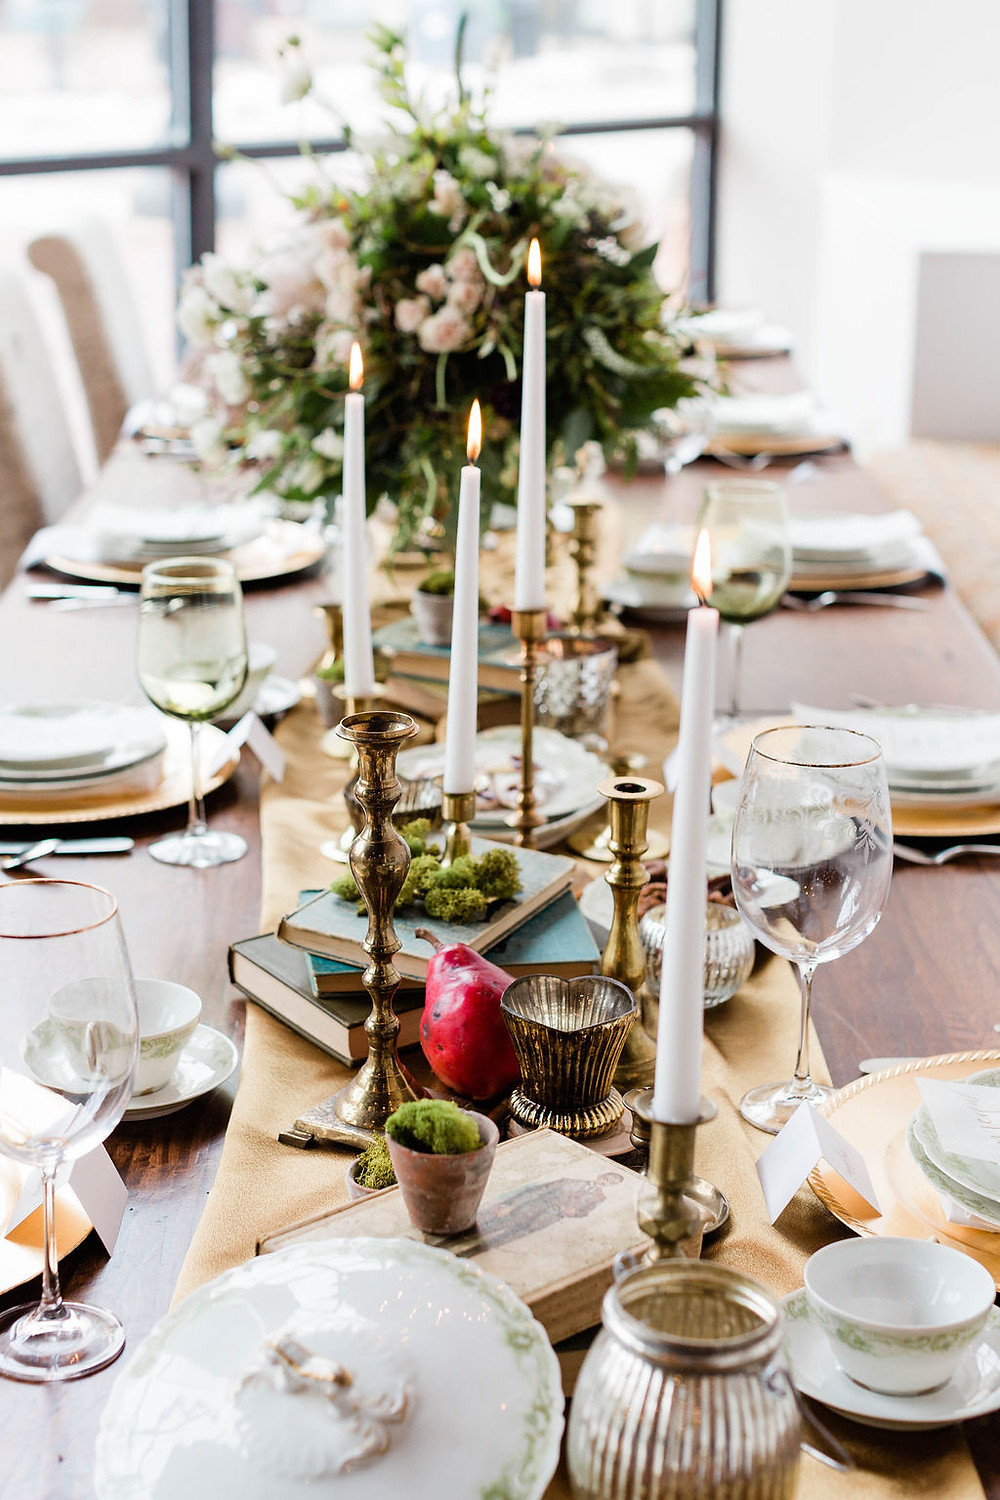 The 14 ft. Harvest table was filled with vintage china, brass candlesticks, vintage books, fruit, nuts, and organic material to carry through the woodland-inspired theme.